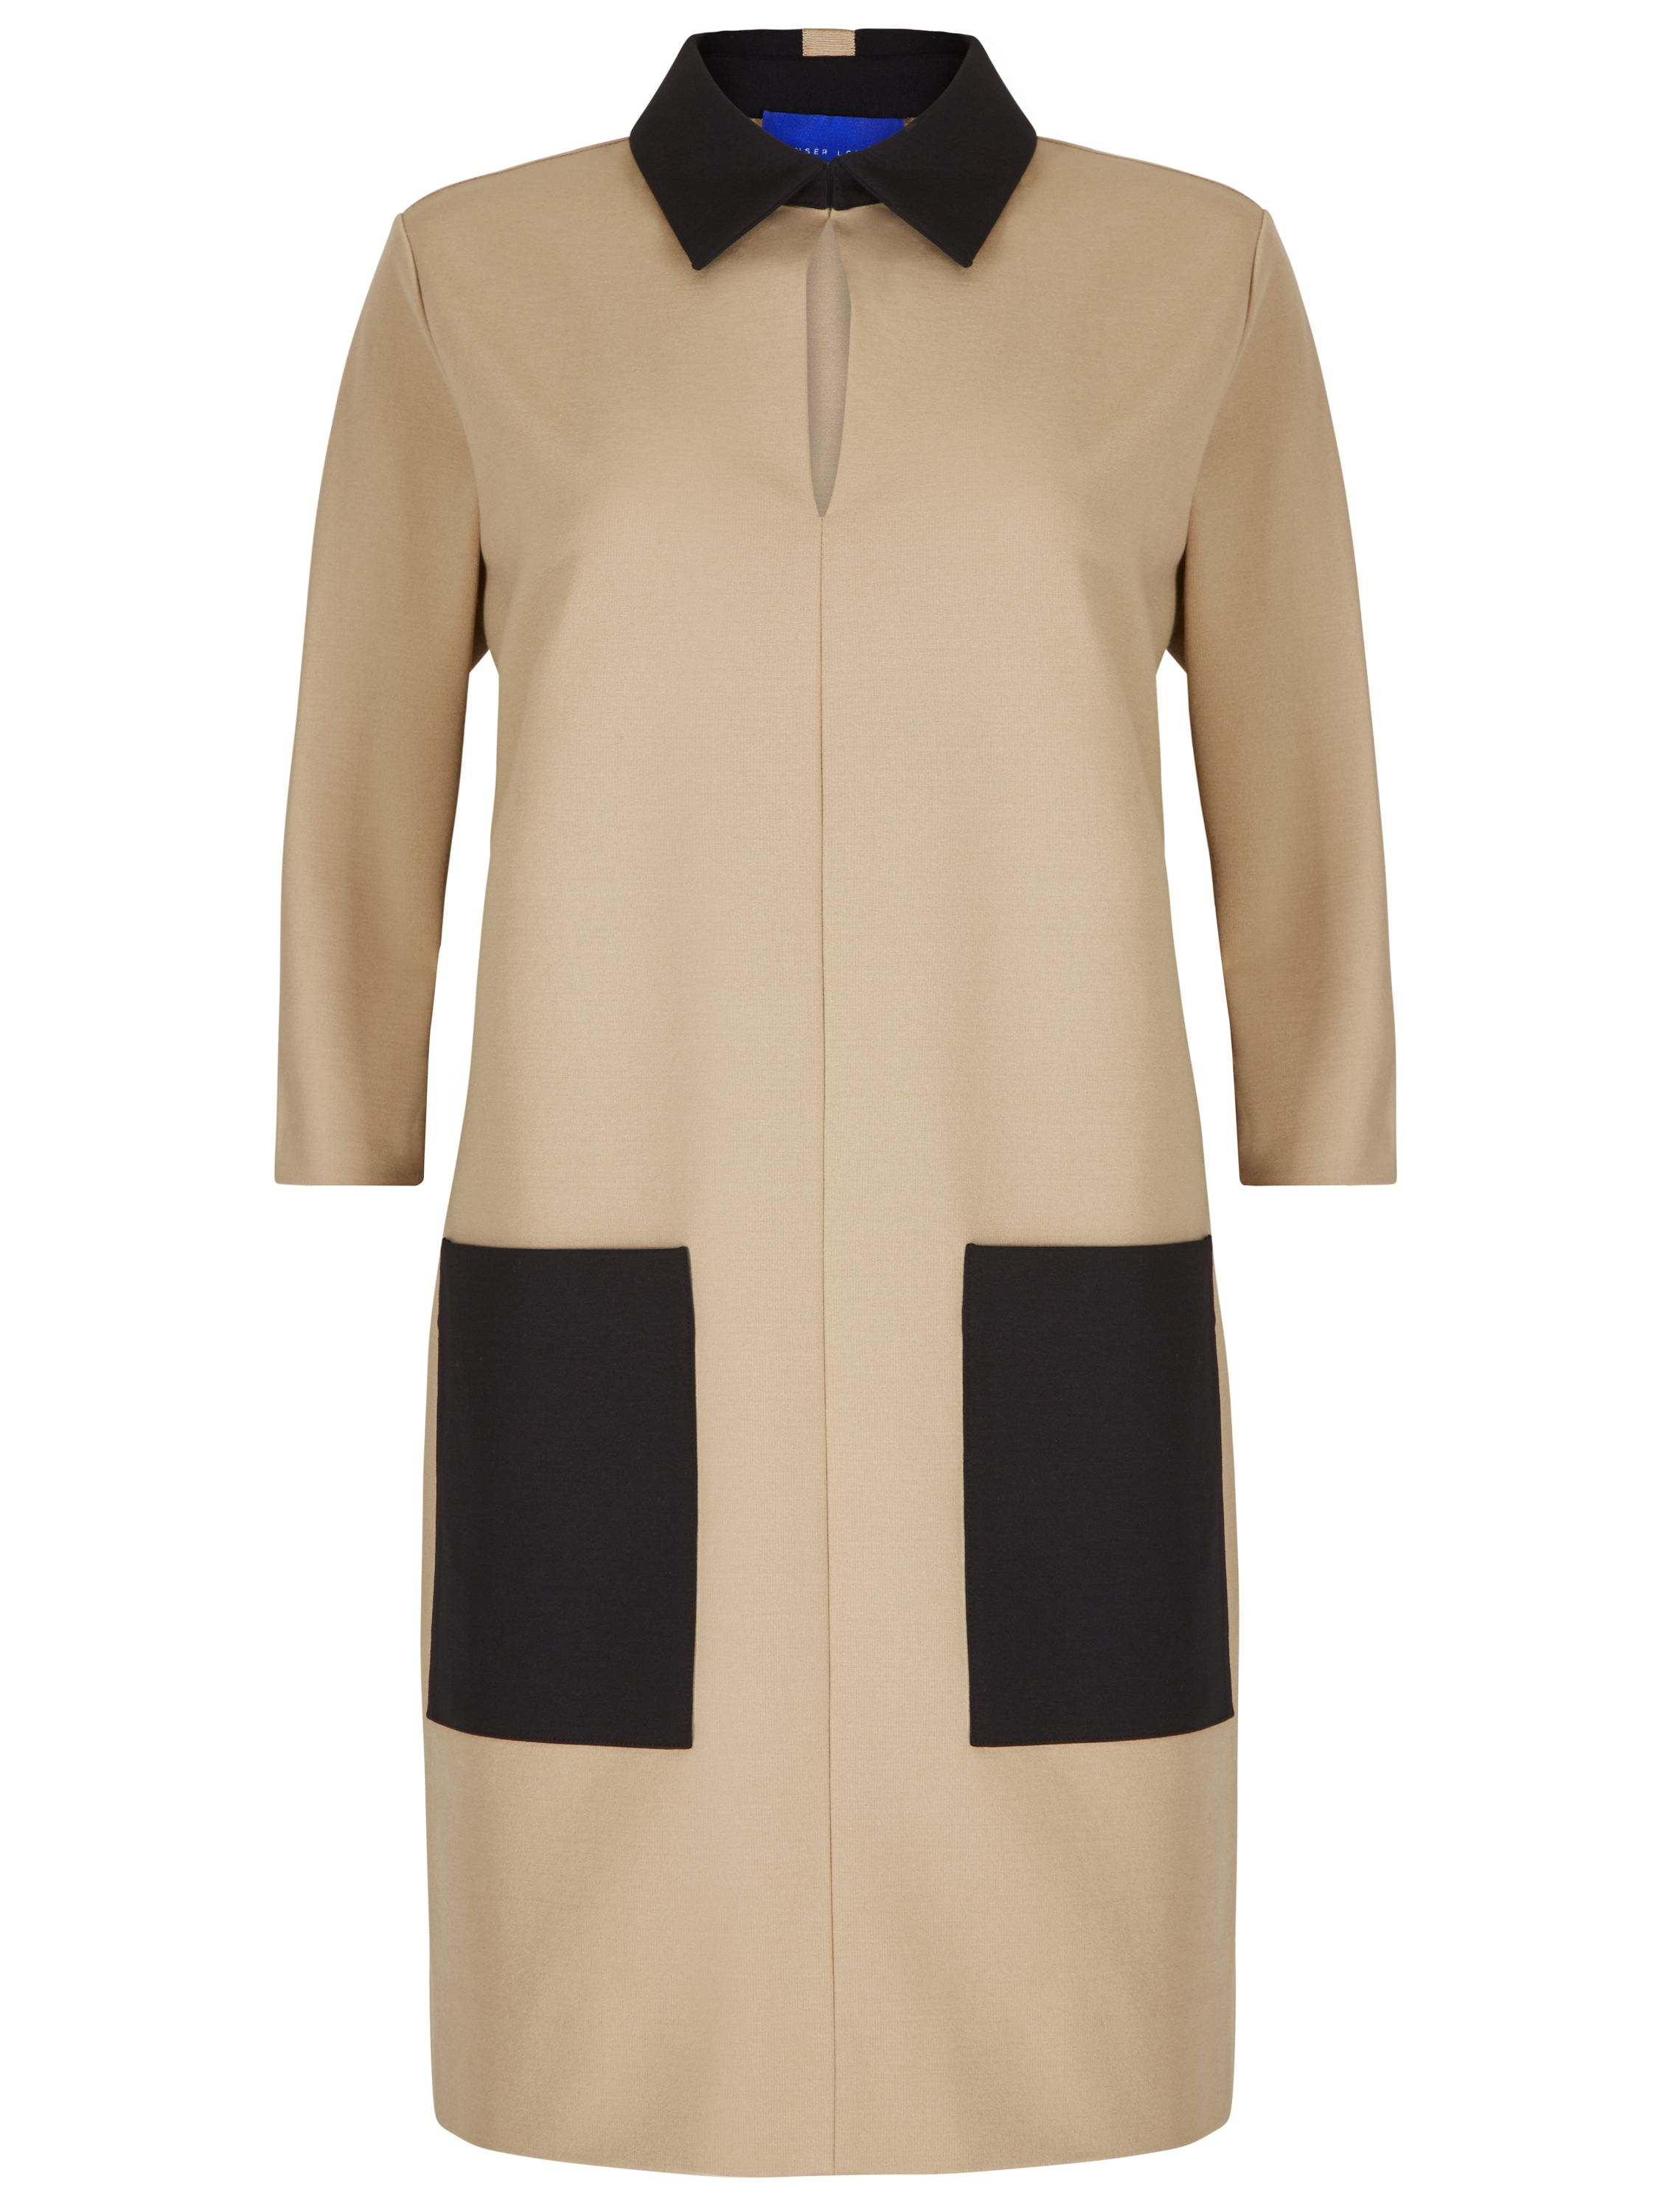 Winser London Miracle Colour Block Shift Dress, Camel